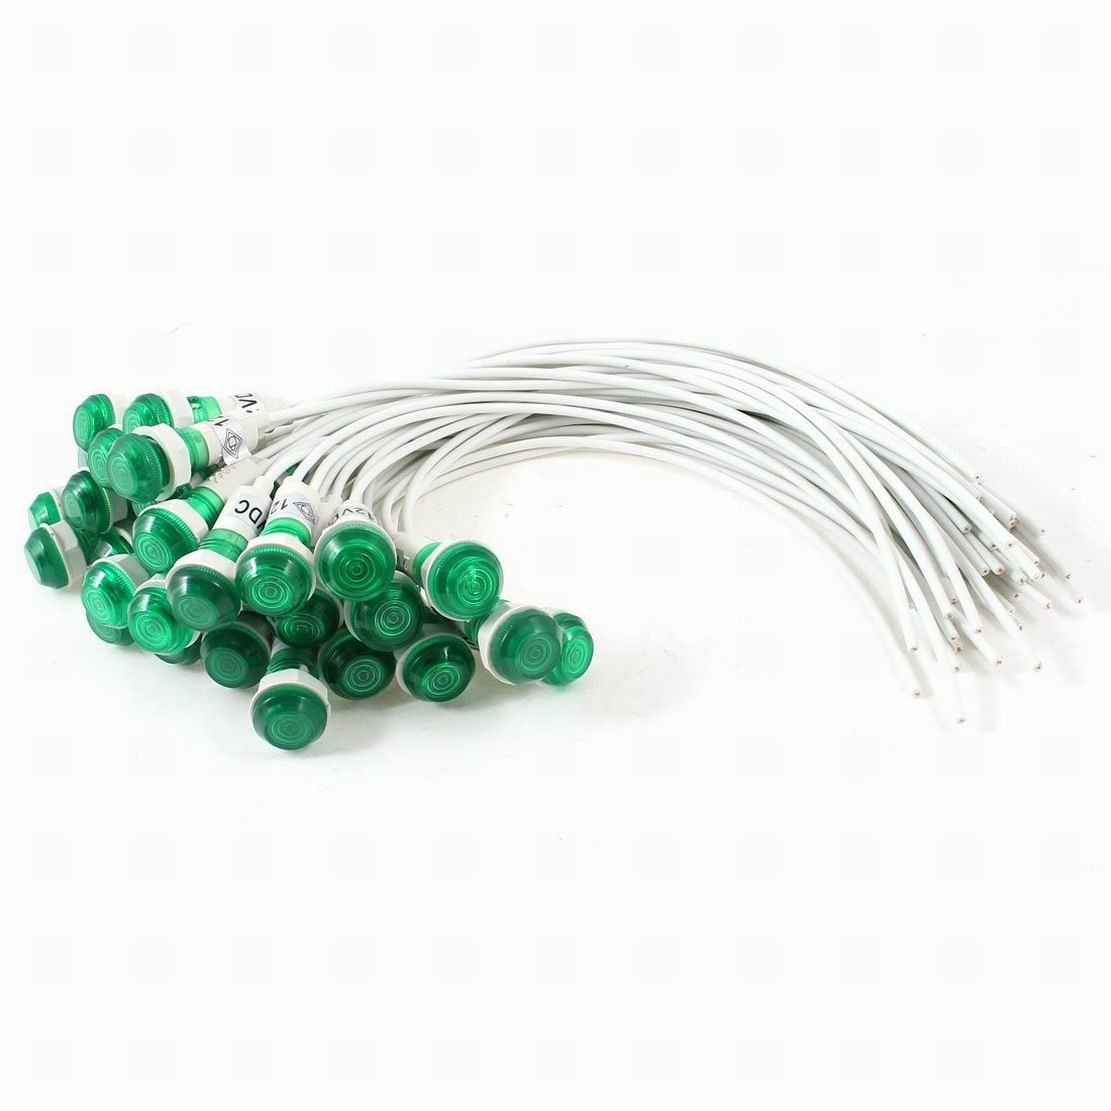 2021 spring and summer new Houseuse 30 Pcs Max 83% OFF 10mm Hole 19cm Long Cable Green Light Indicator